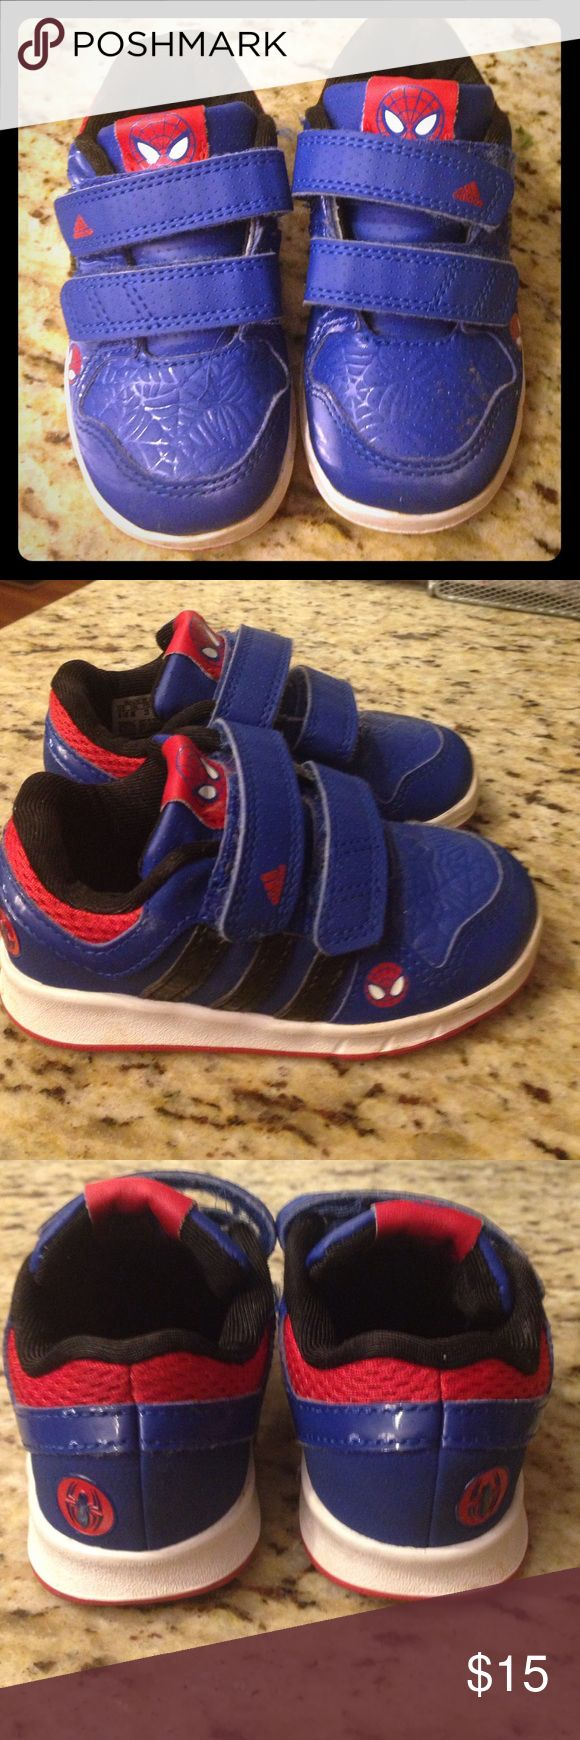 Toddler adidas Spider-Man shoes -6.5 Preloved but in great shape. Adidas Spider-Man shoes in a toddler size 6.5! My son loved these but his feet have outgrown them. Velcro straps. Adidas Shoes Sneakers